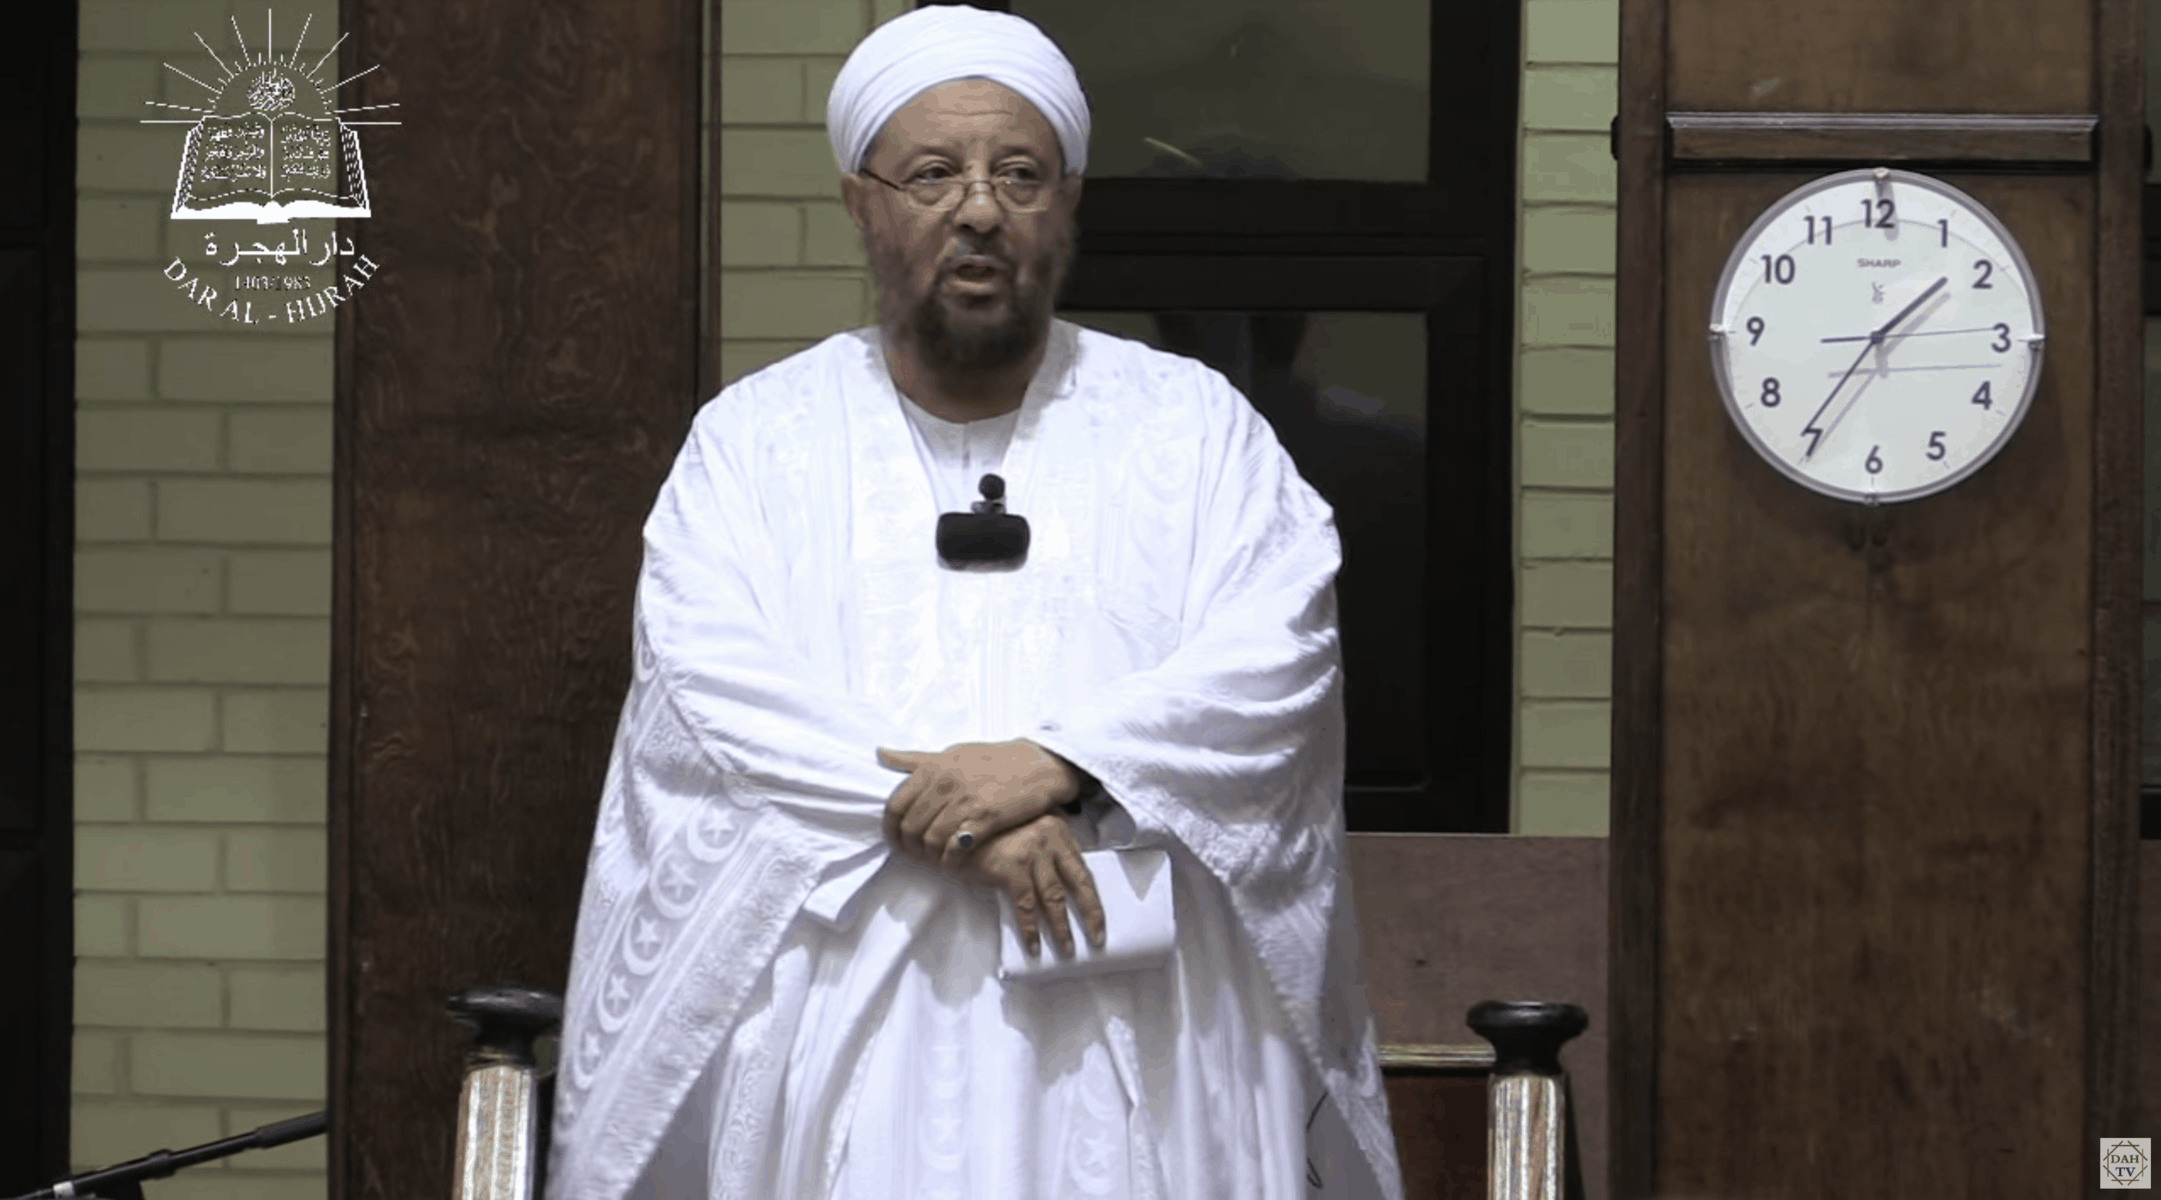 Abdullah Hakim Quick – Urgent Alarm in The Age of Crisis